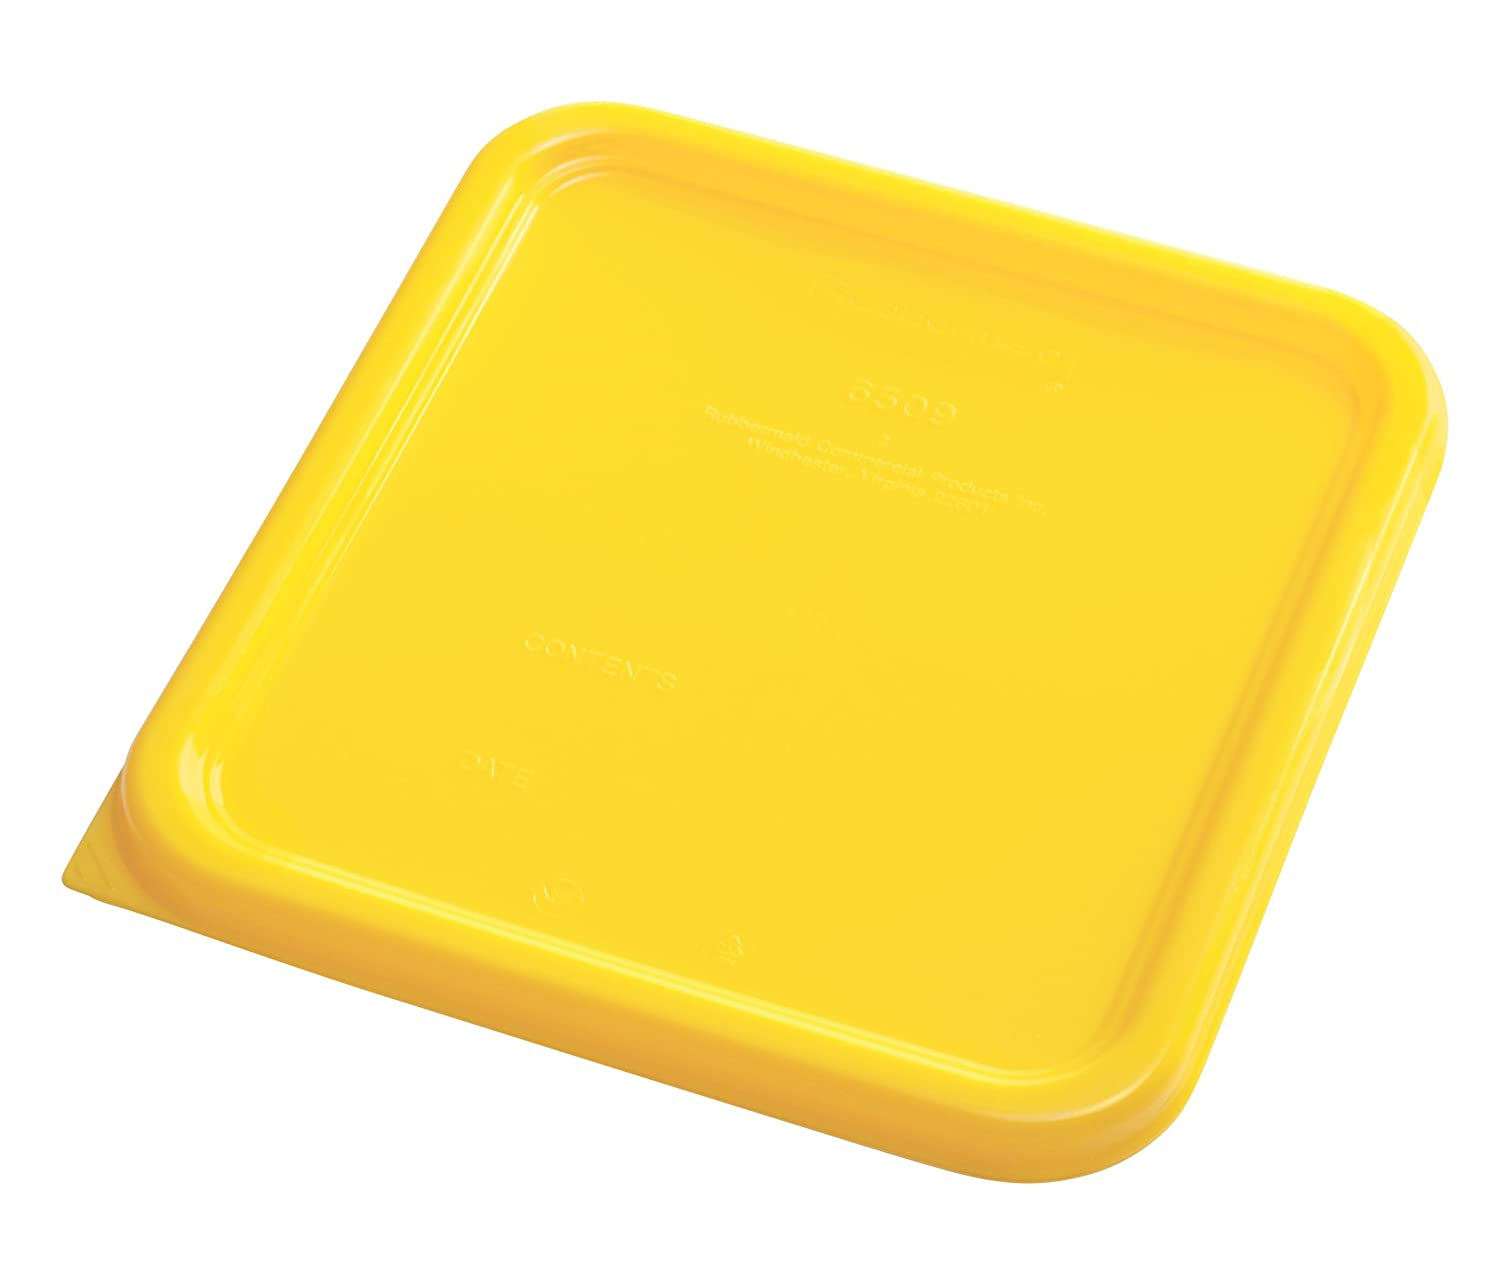 Rubbermaid Commercial Products 1980303 Rubbermaid Commercial Plastic Food Storage Container Lid, Square, Yellow, 4 and 8 quart